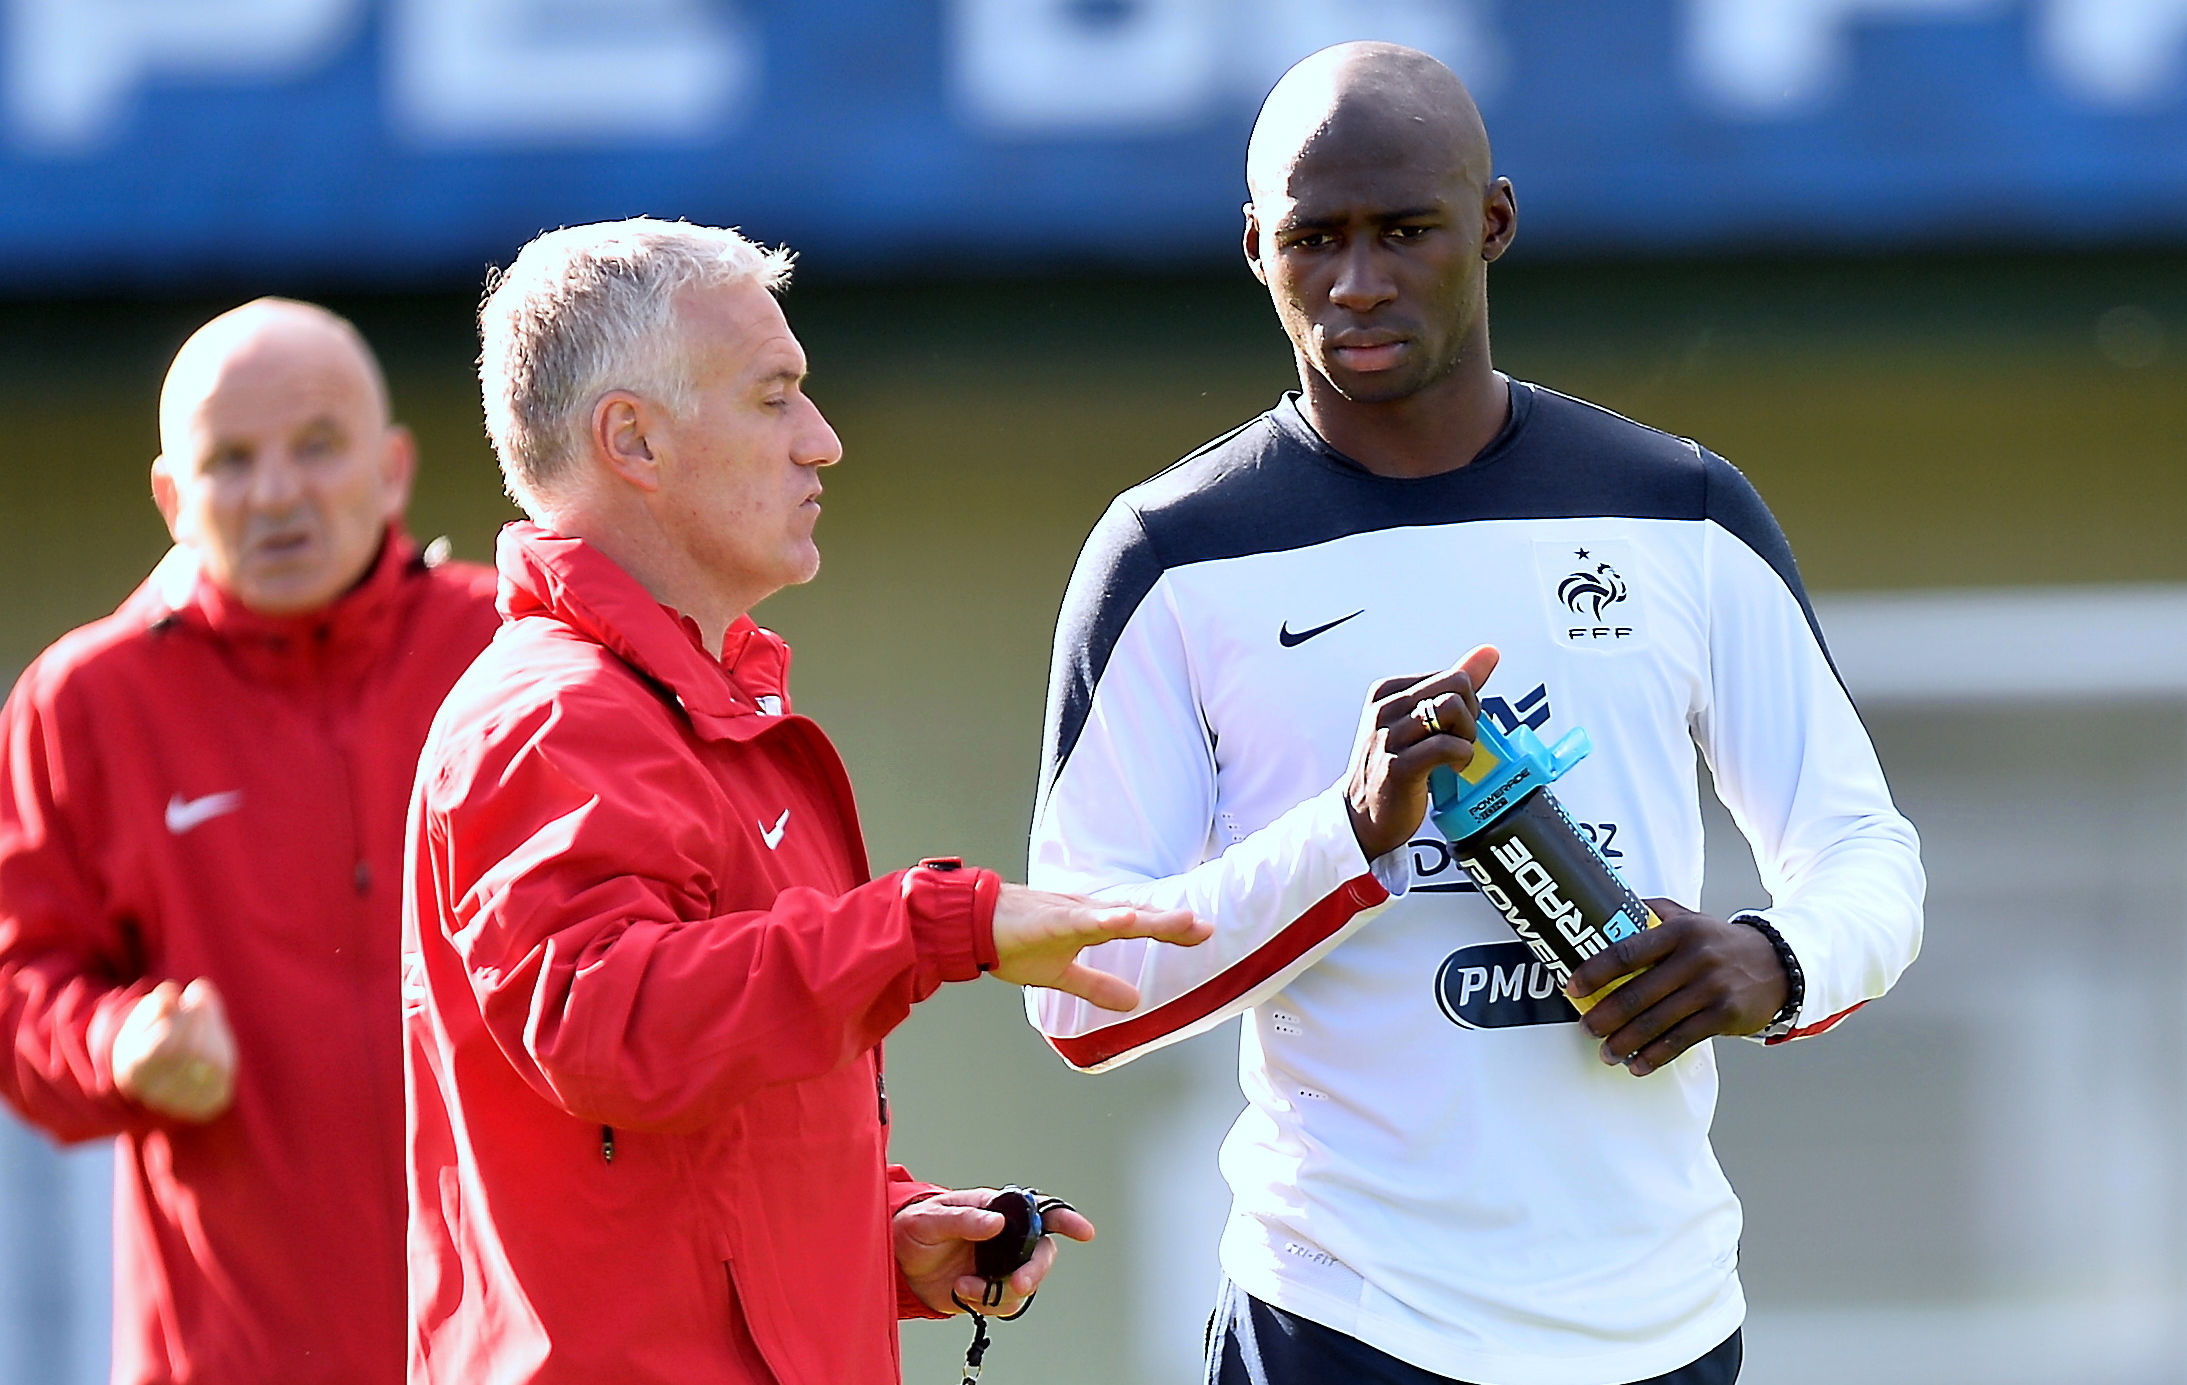 Football - Equipe de France - Equipe de France : Mangala remplace Mathieu